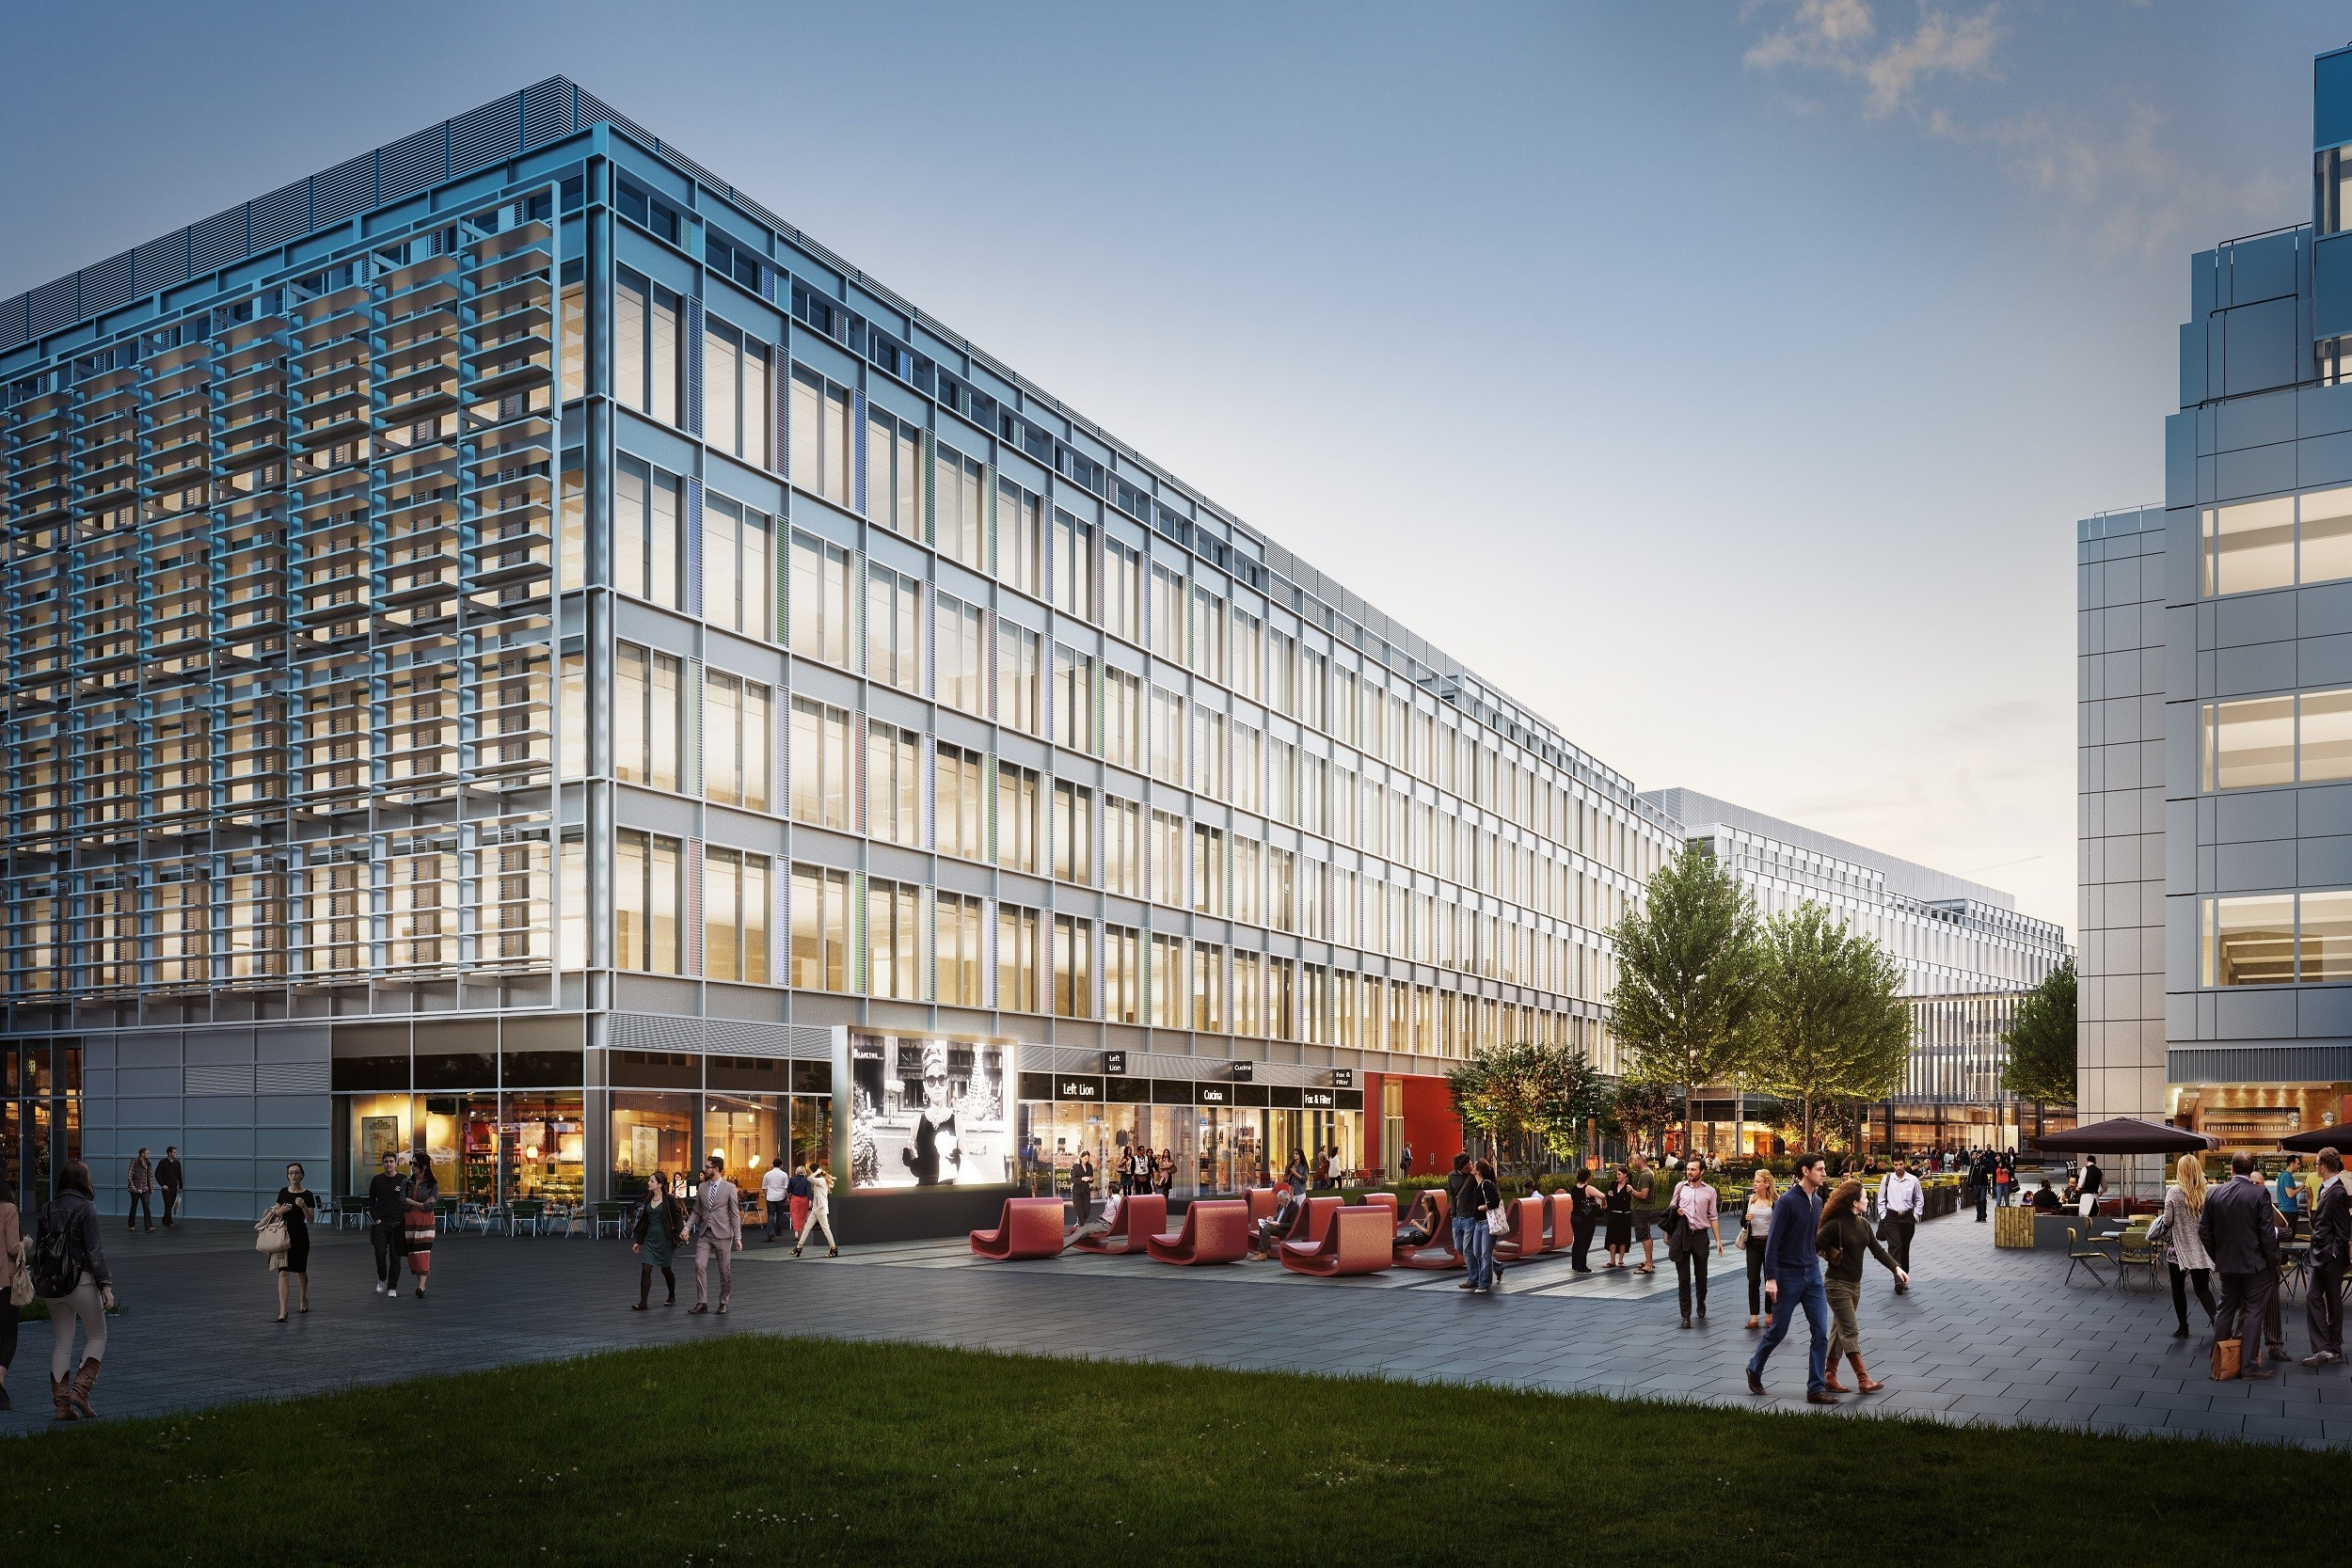 'Not So Sporty Sports Day' coming to White City Place Feature Image